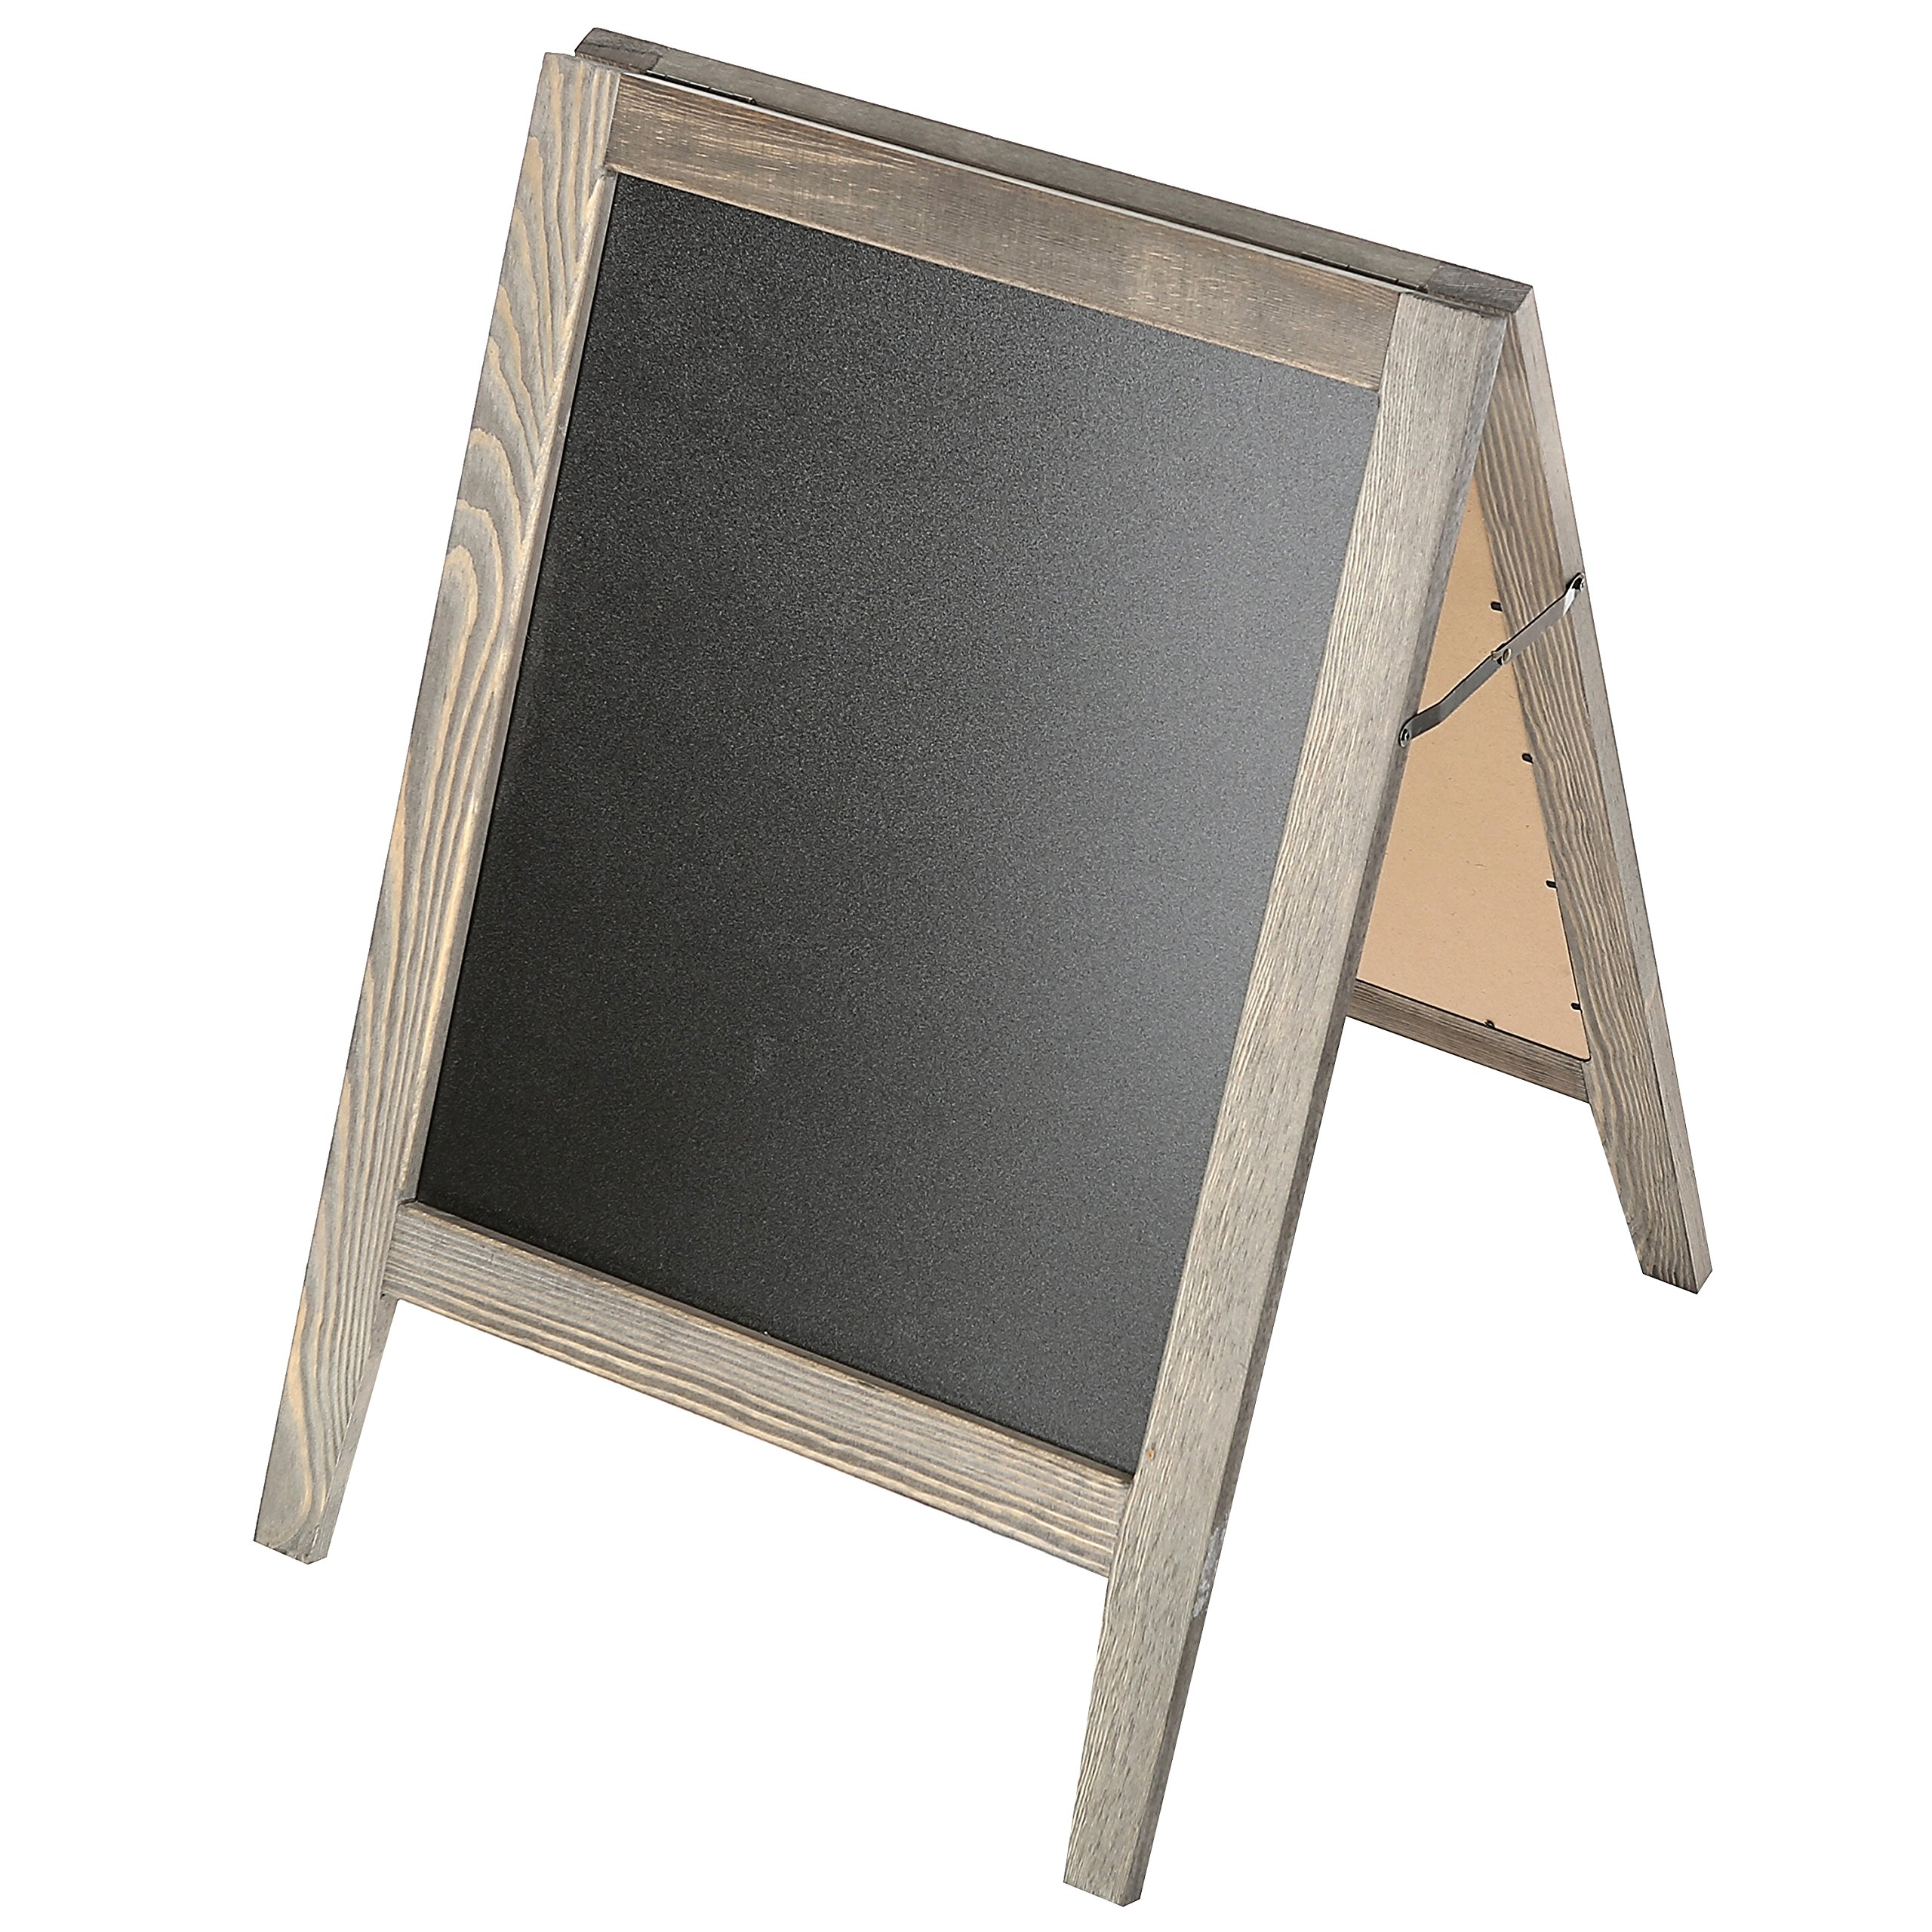 Rustic Stained Vintaged Wooden Freestanding A-Frame Double-Sided Chalkboard Sidewalk Sign by MyGift (Image #3)